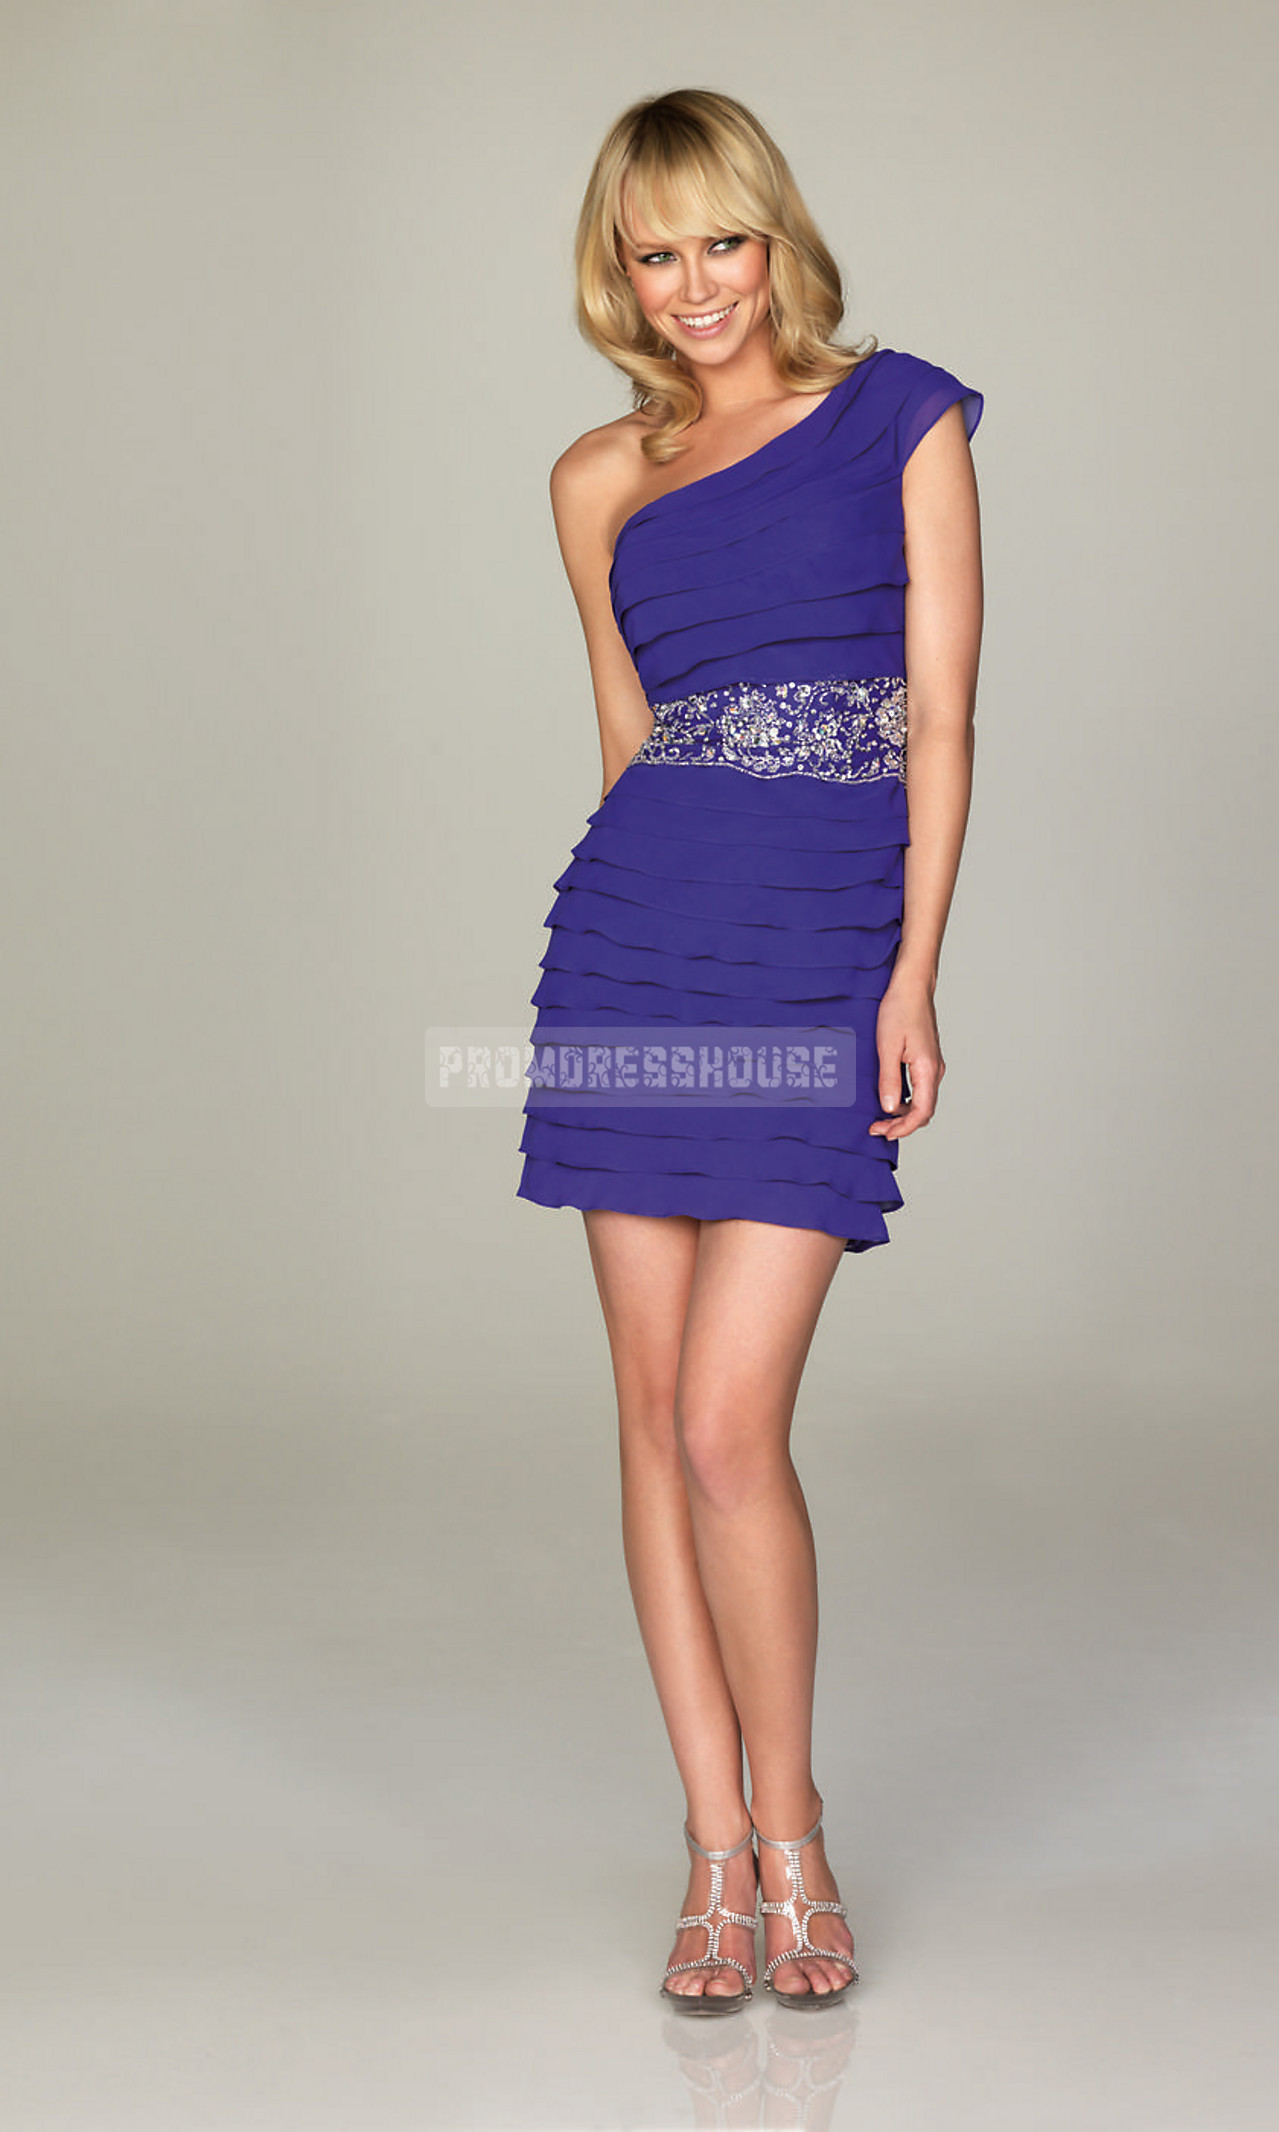 Chiffon Beading Column Tiers One Shoulder Short Length Cocktail Dress - Promdresshouse.com